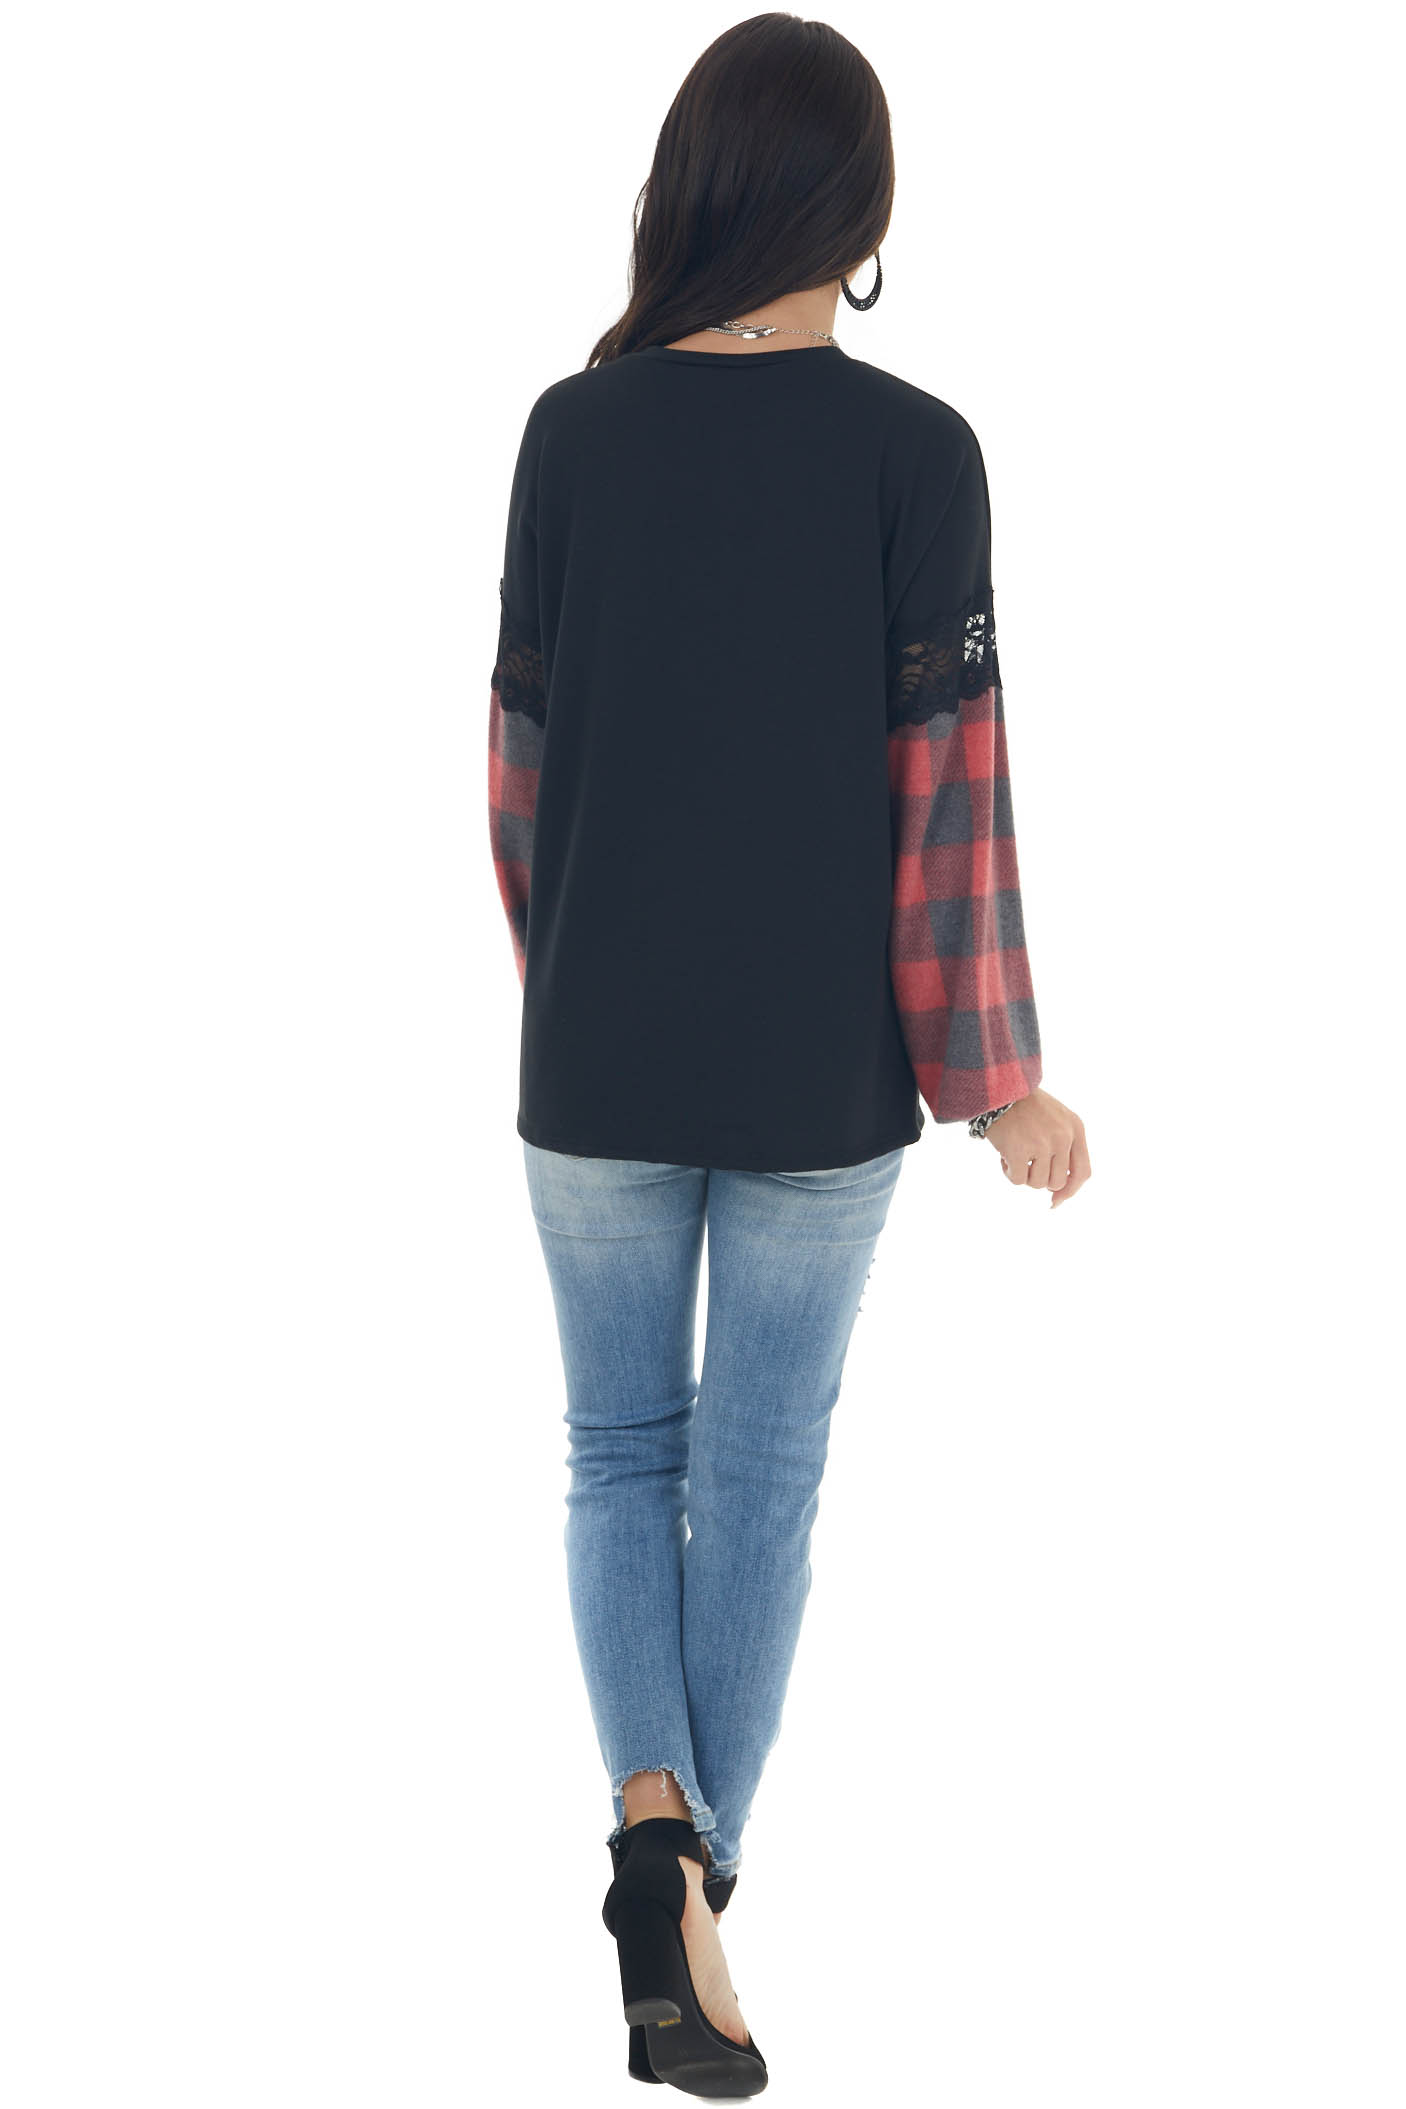 Black Plaid Puff Sleeve Top with Lace Details